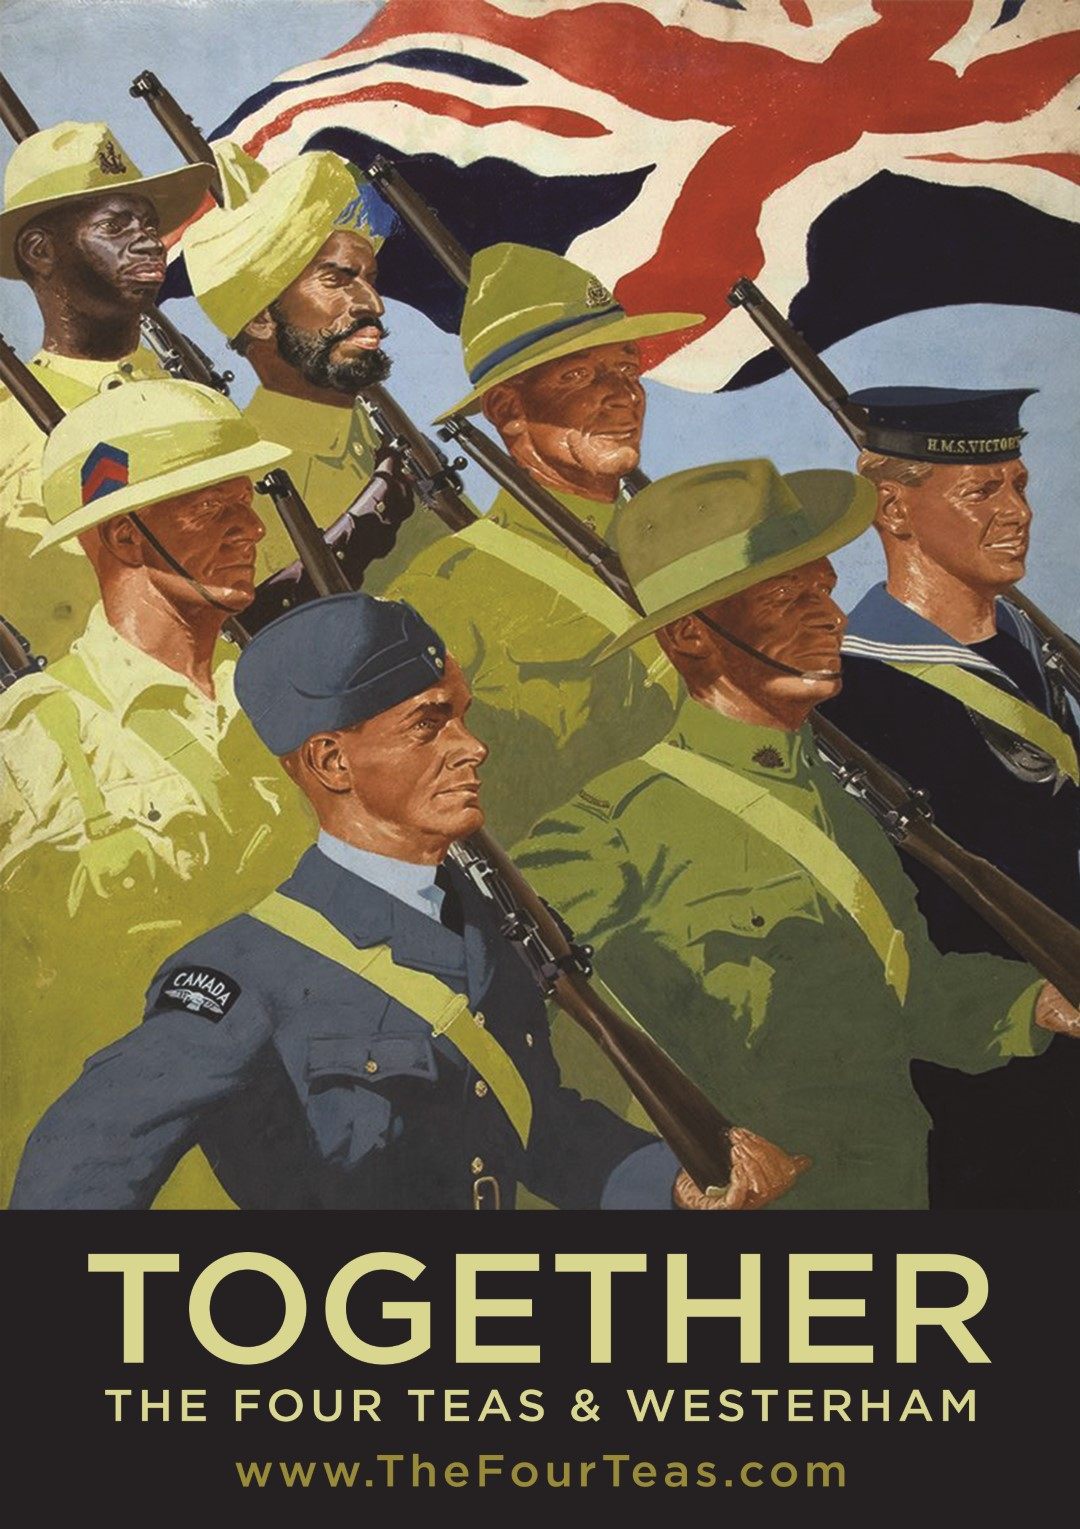 Together - A1 Poster (Resized)